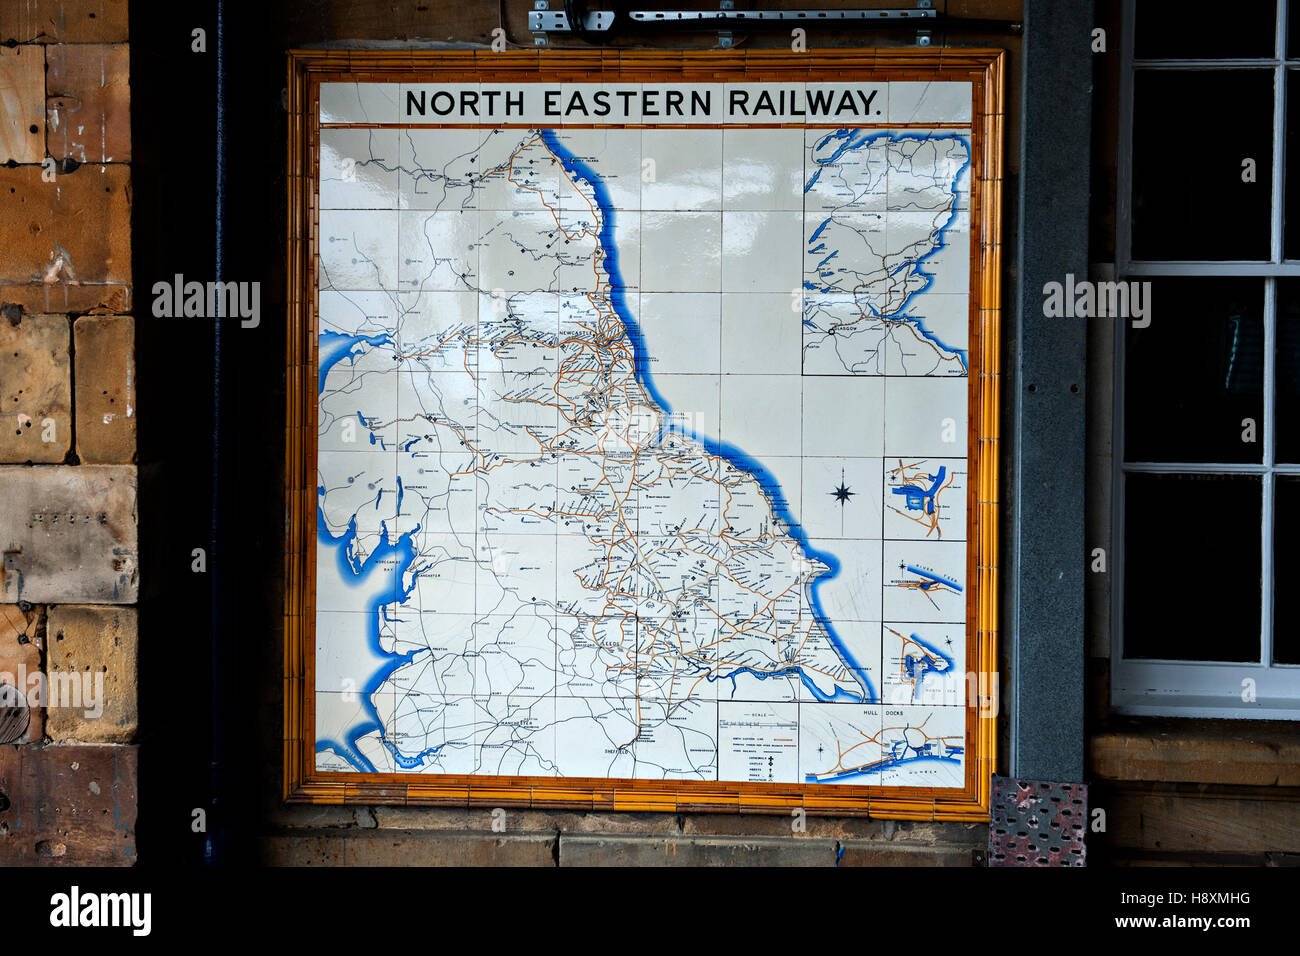 Map made from glazed tiles of the North Eastern Railway at